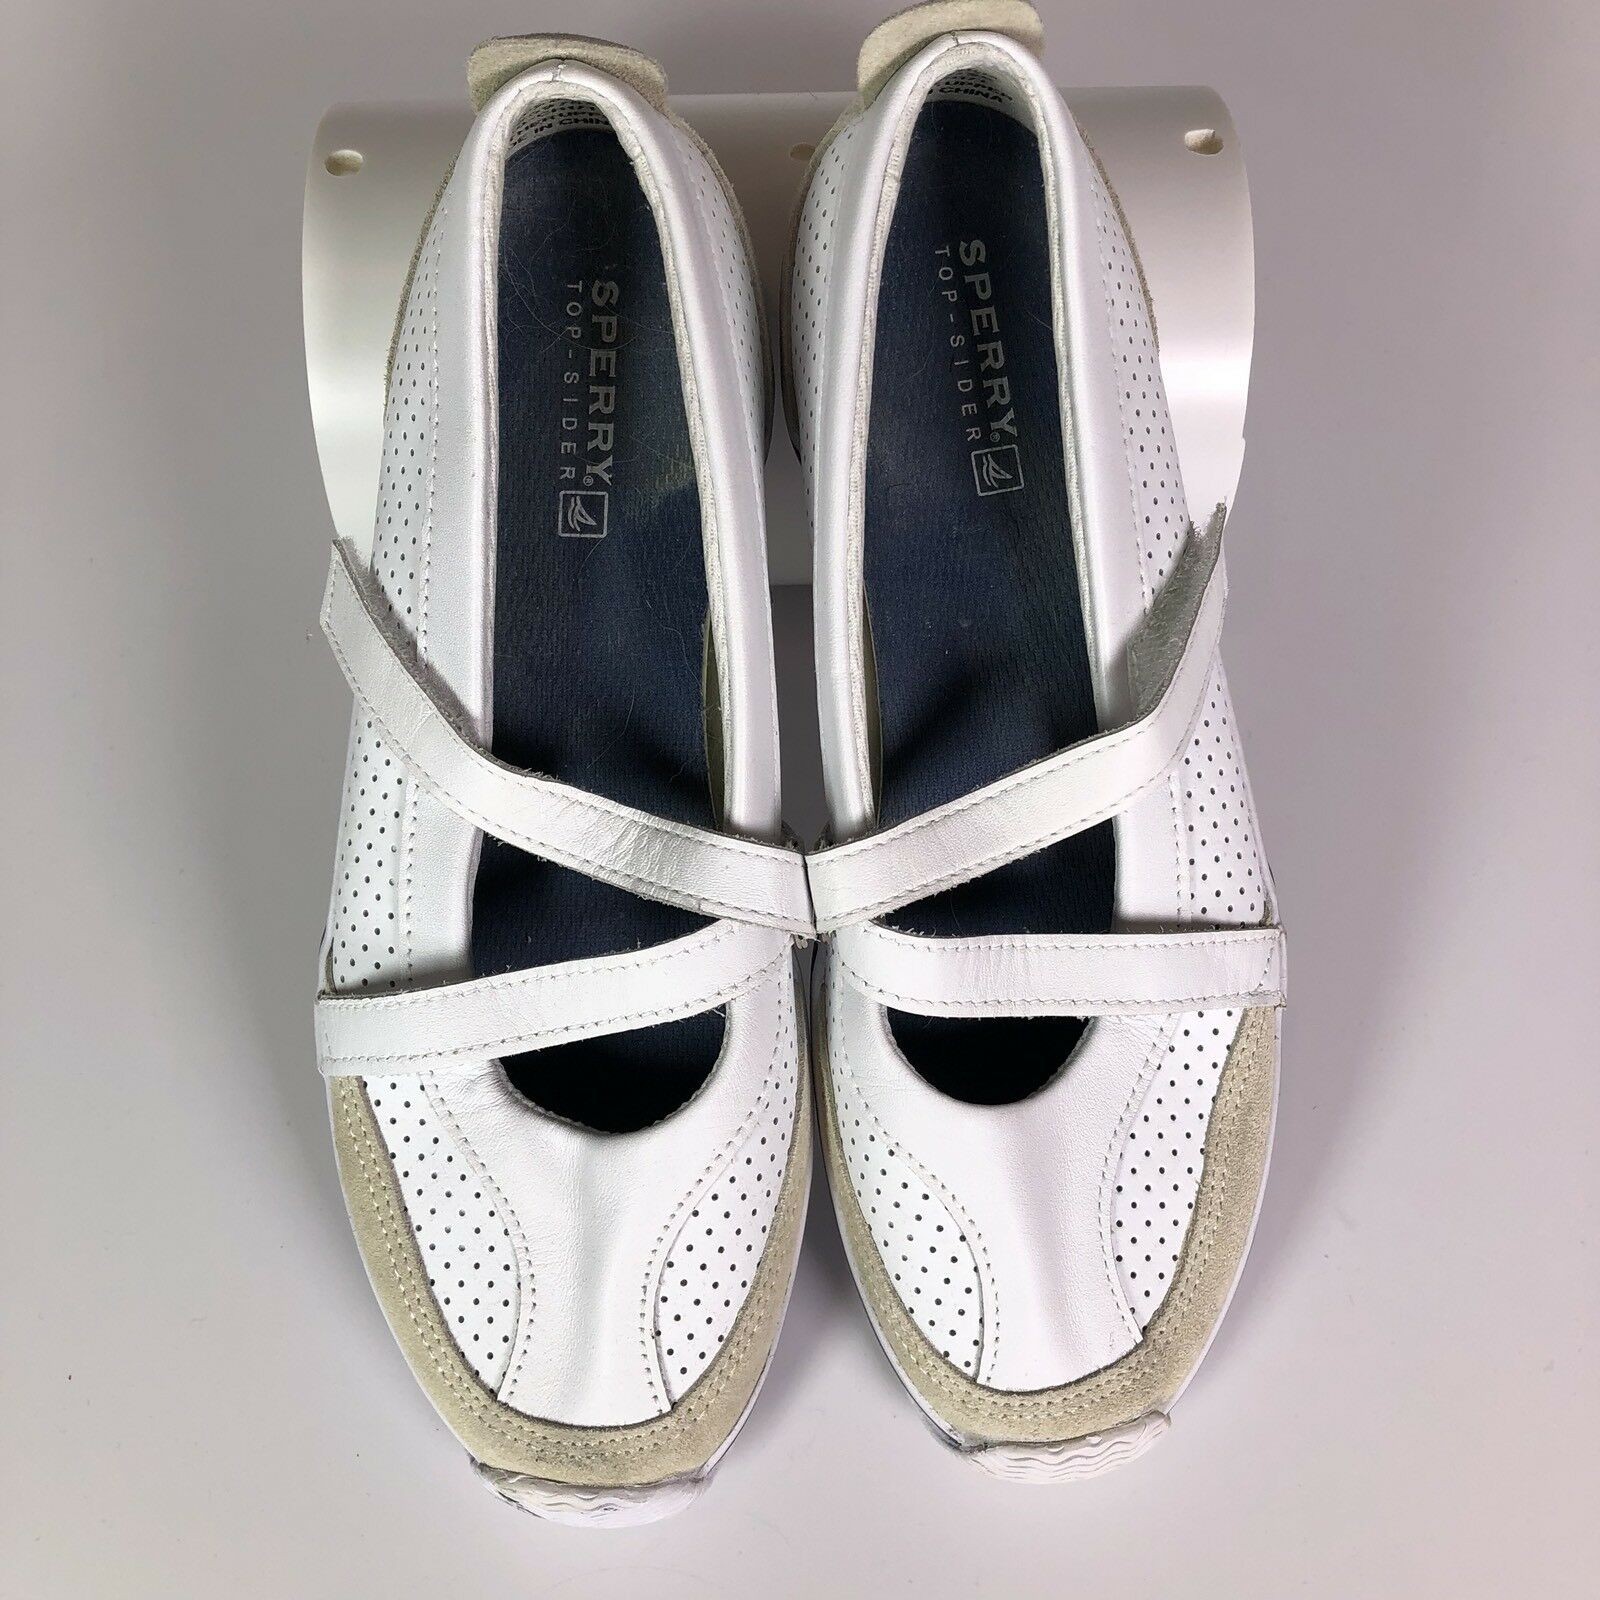 Women's Sperry A8-CH171 White Leather Z Strap Sneakers shoes Size 8.5